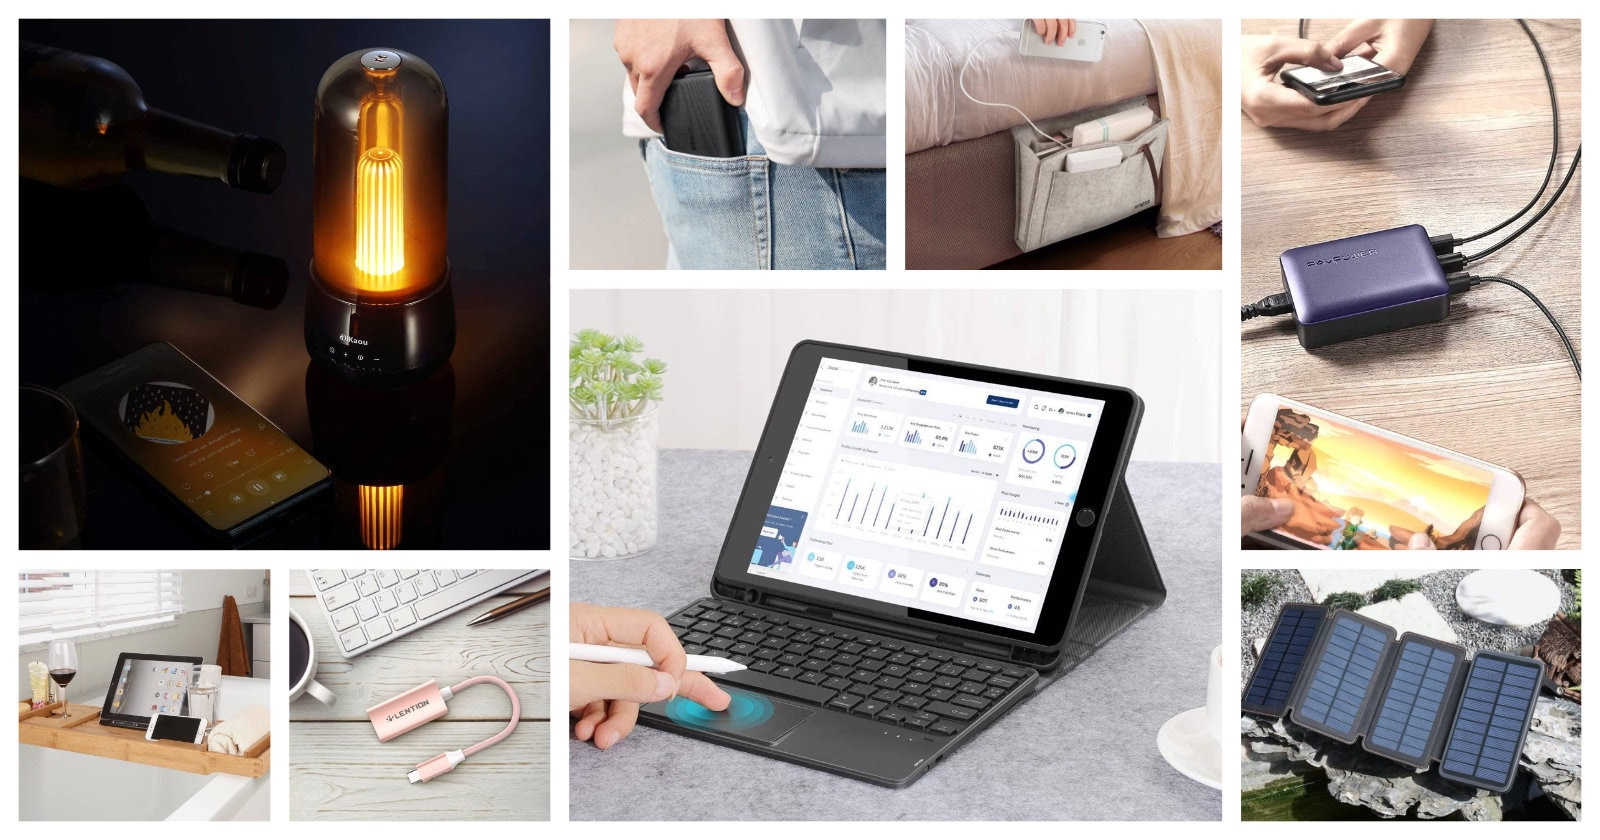 21 best-rated iPad accessories you can get in 2021